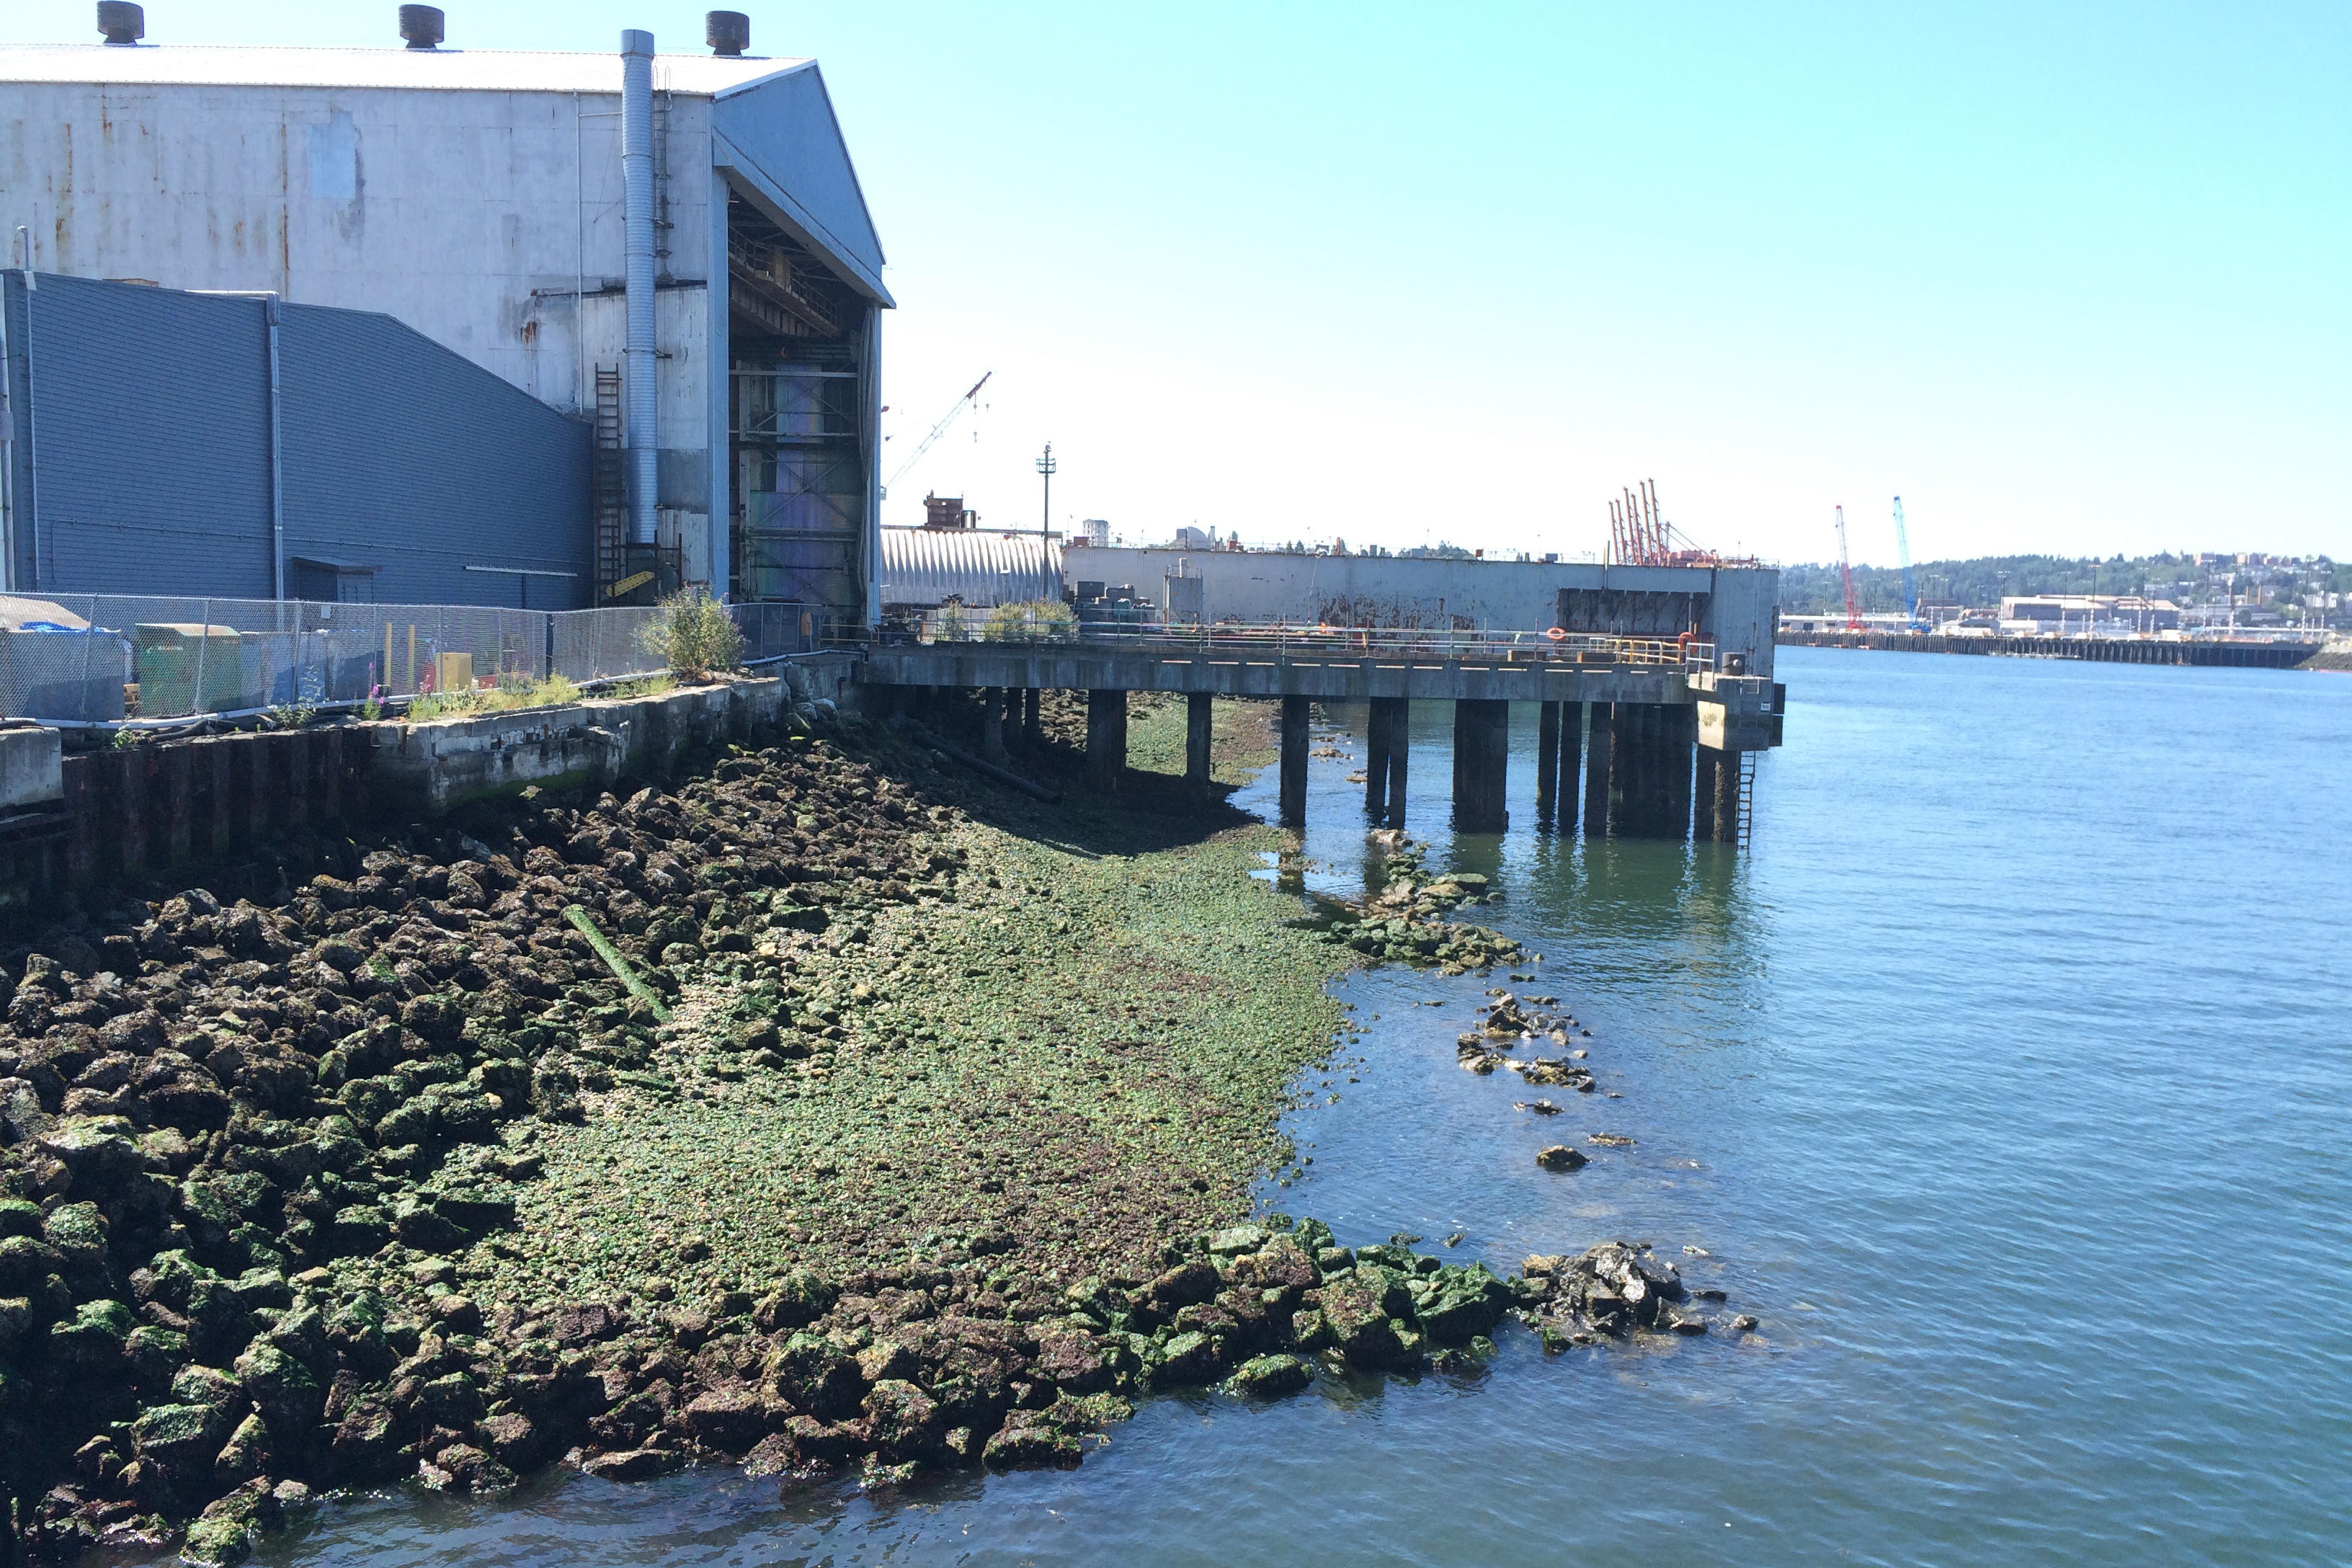 An industrial barn and pier on the banks of the Lower Duwamish River. Image: Floyd Snider